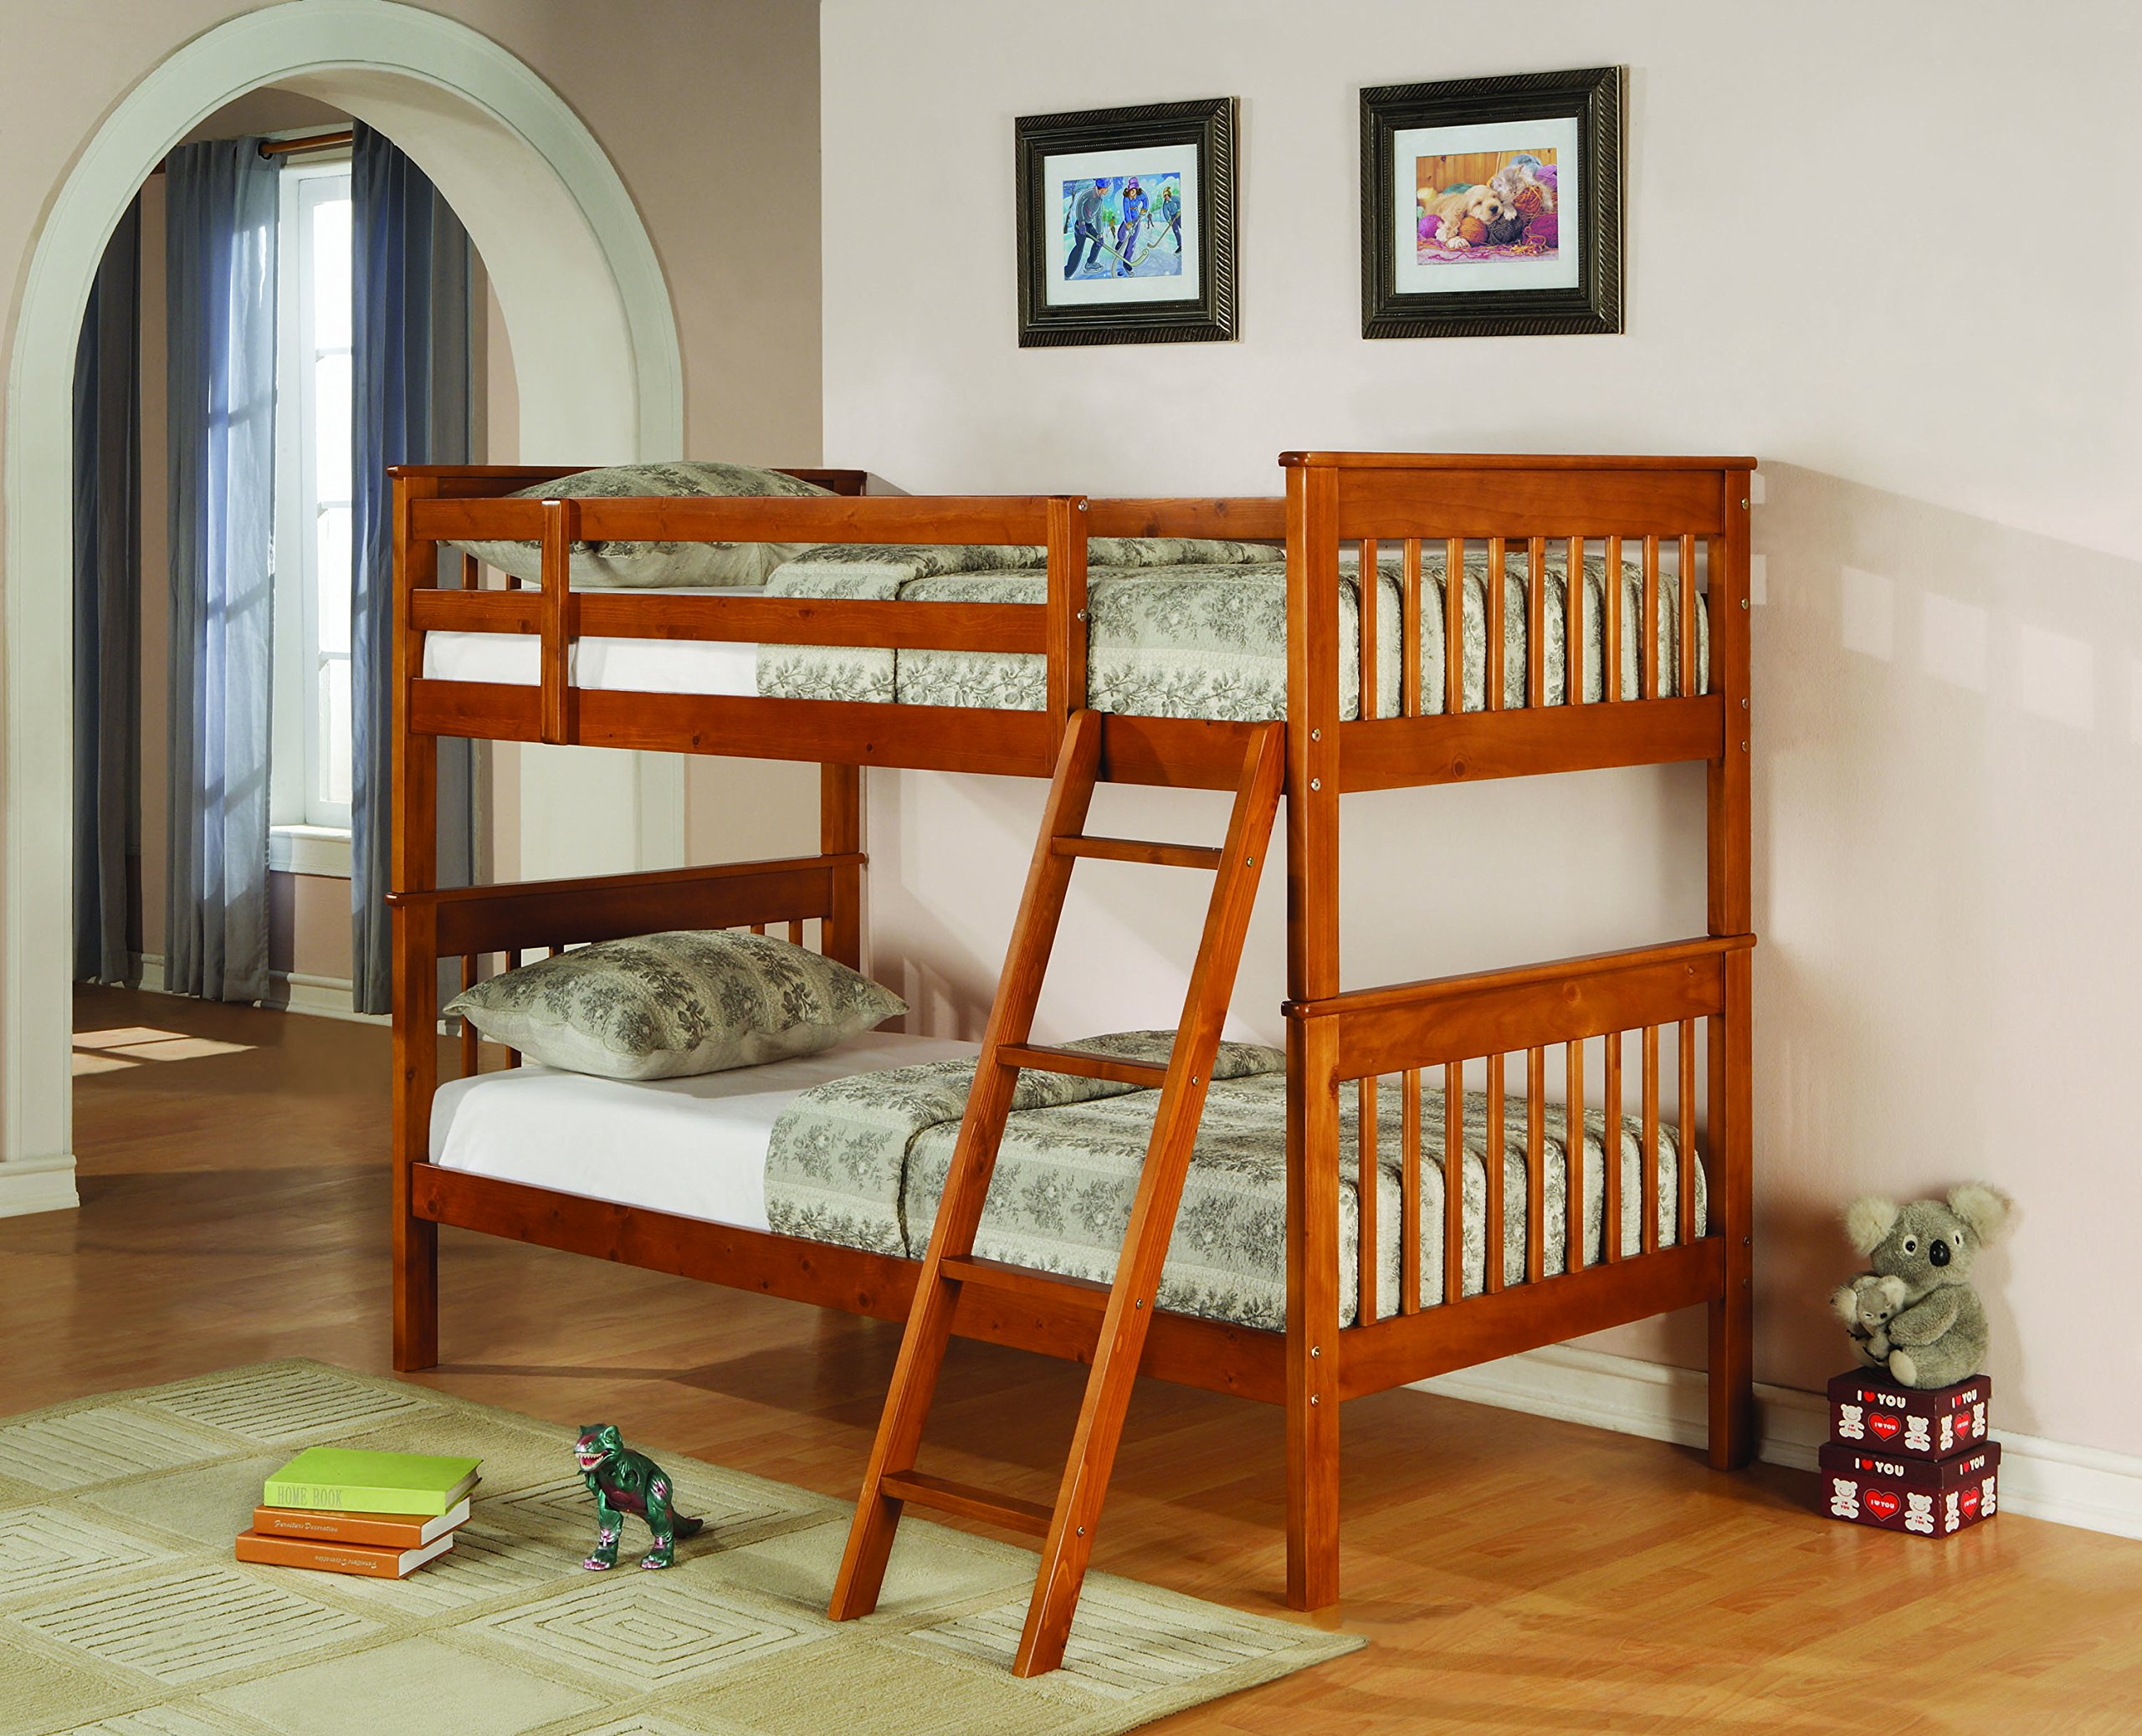 Coaster Home Furnishings 460233 Transitional Bunk Bed, Distressed Pine